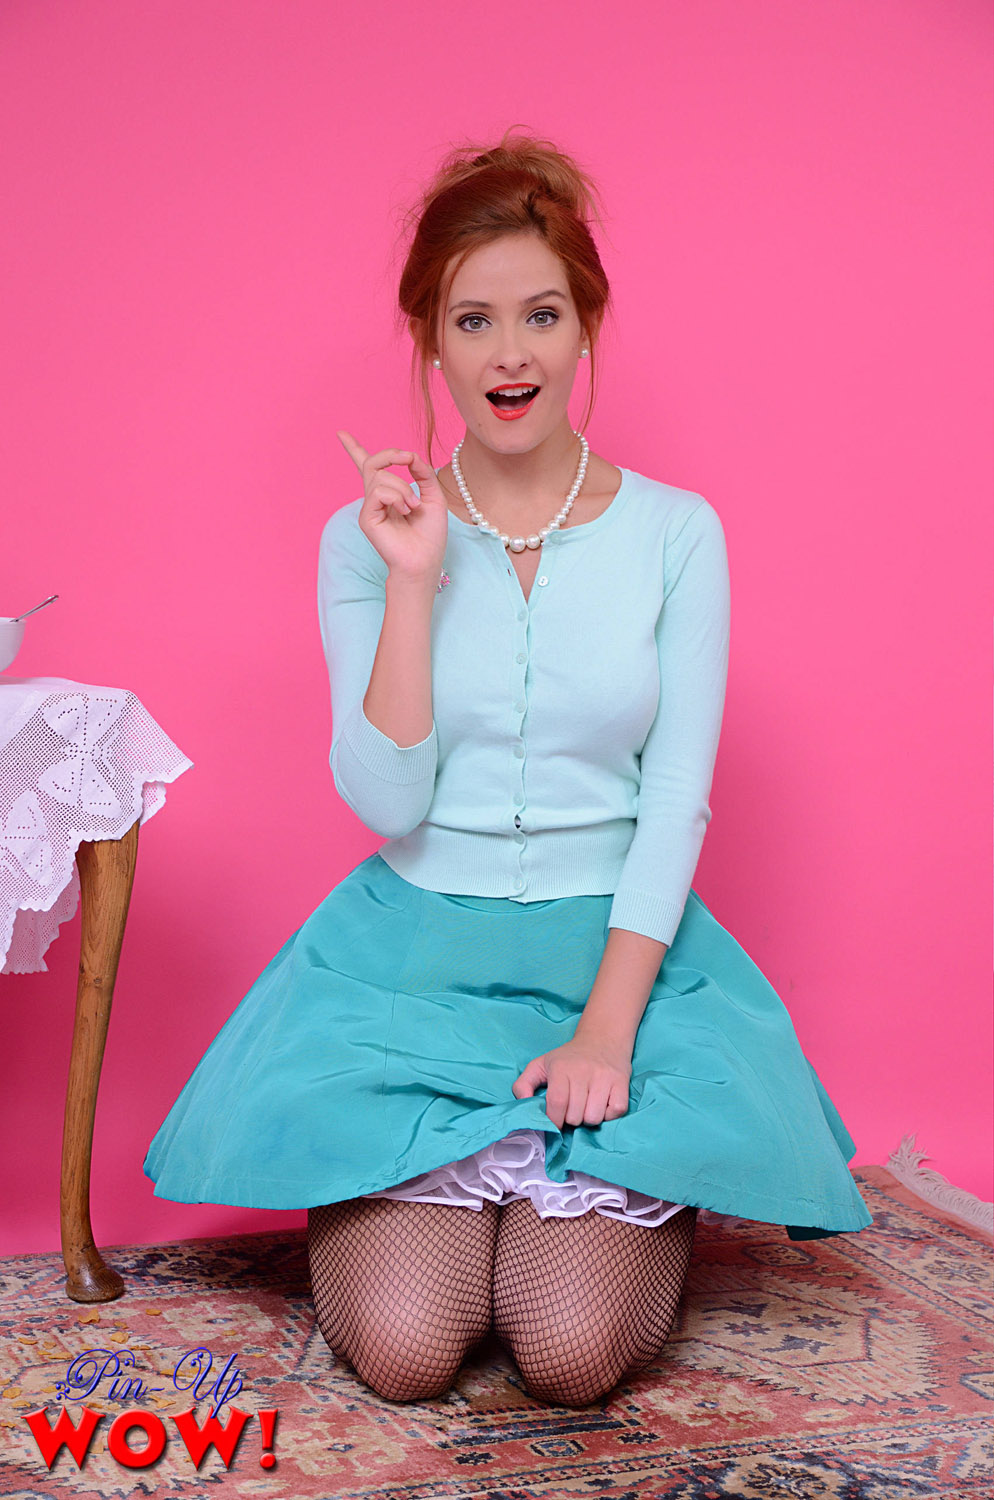 Elle Richie At Your Service Pinupwow-3451